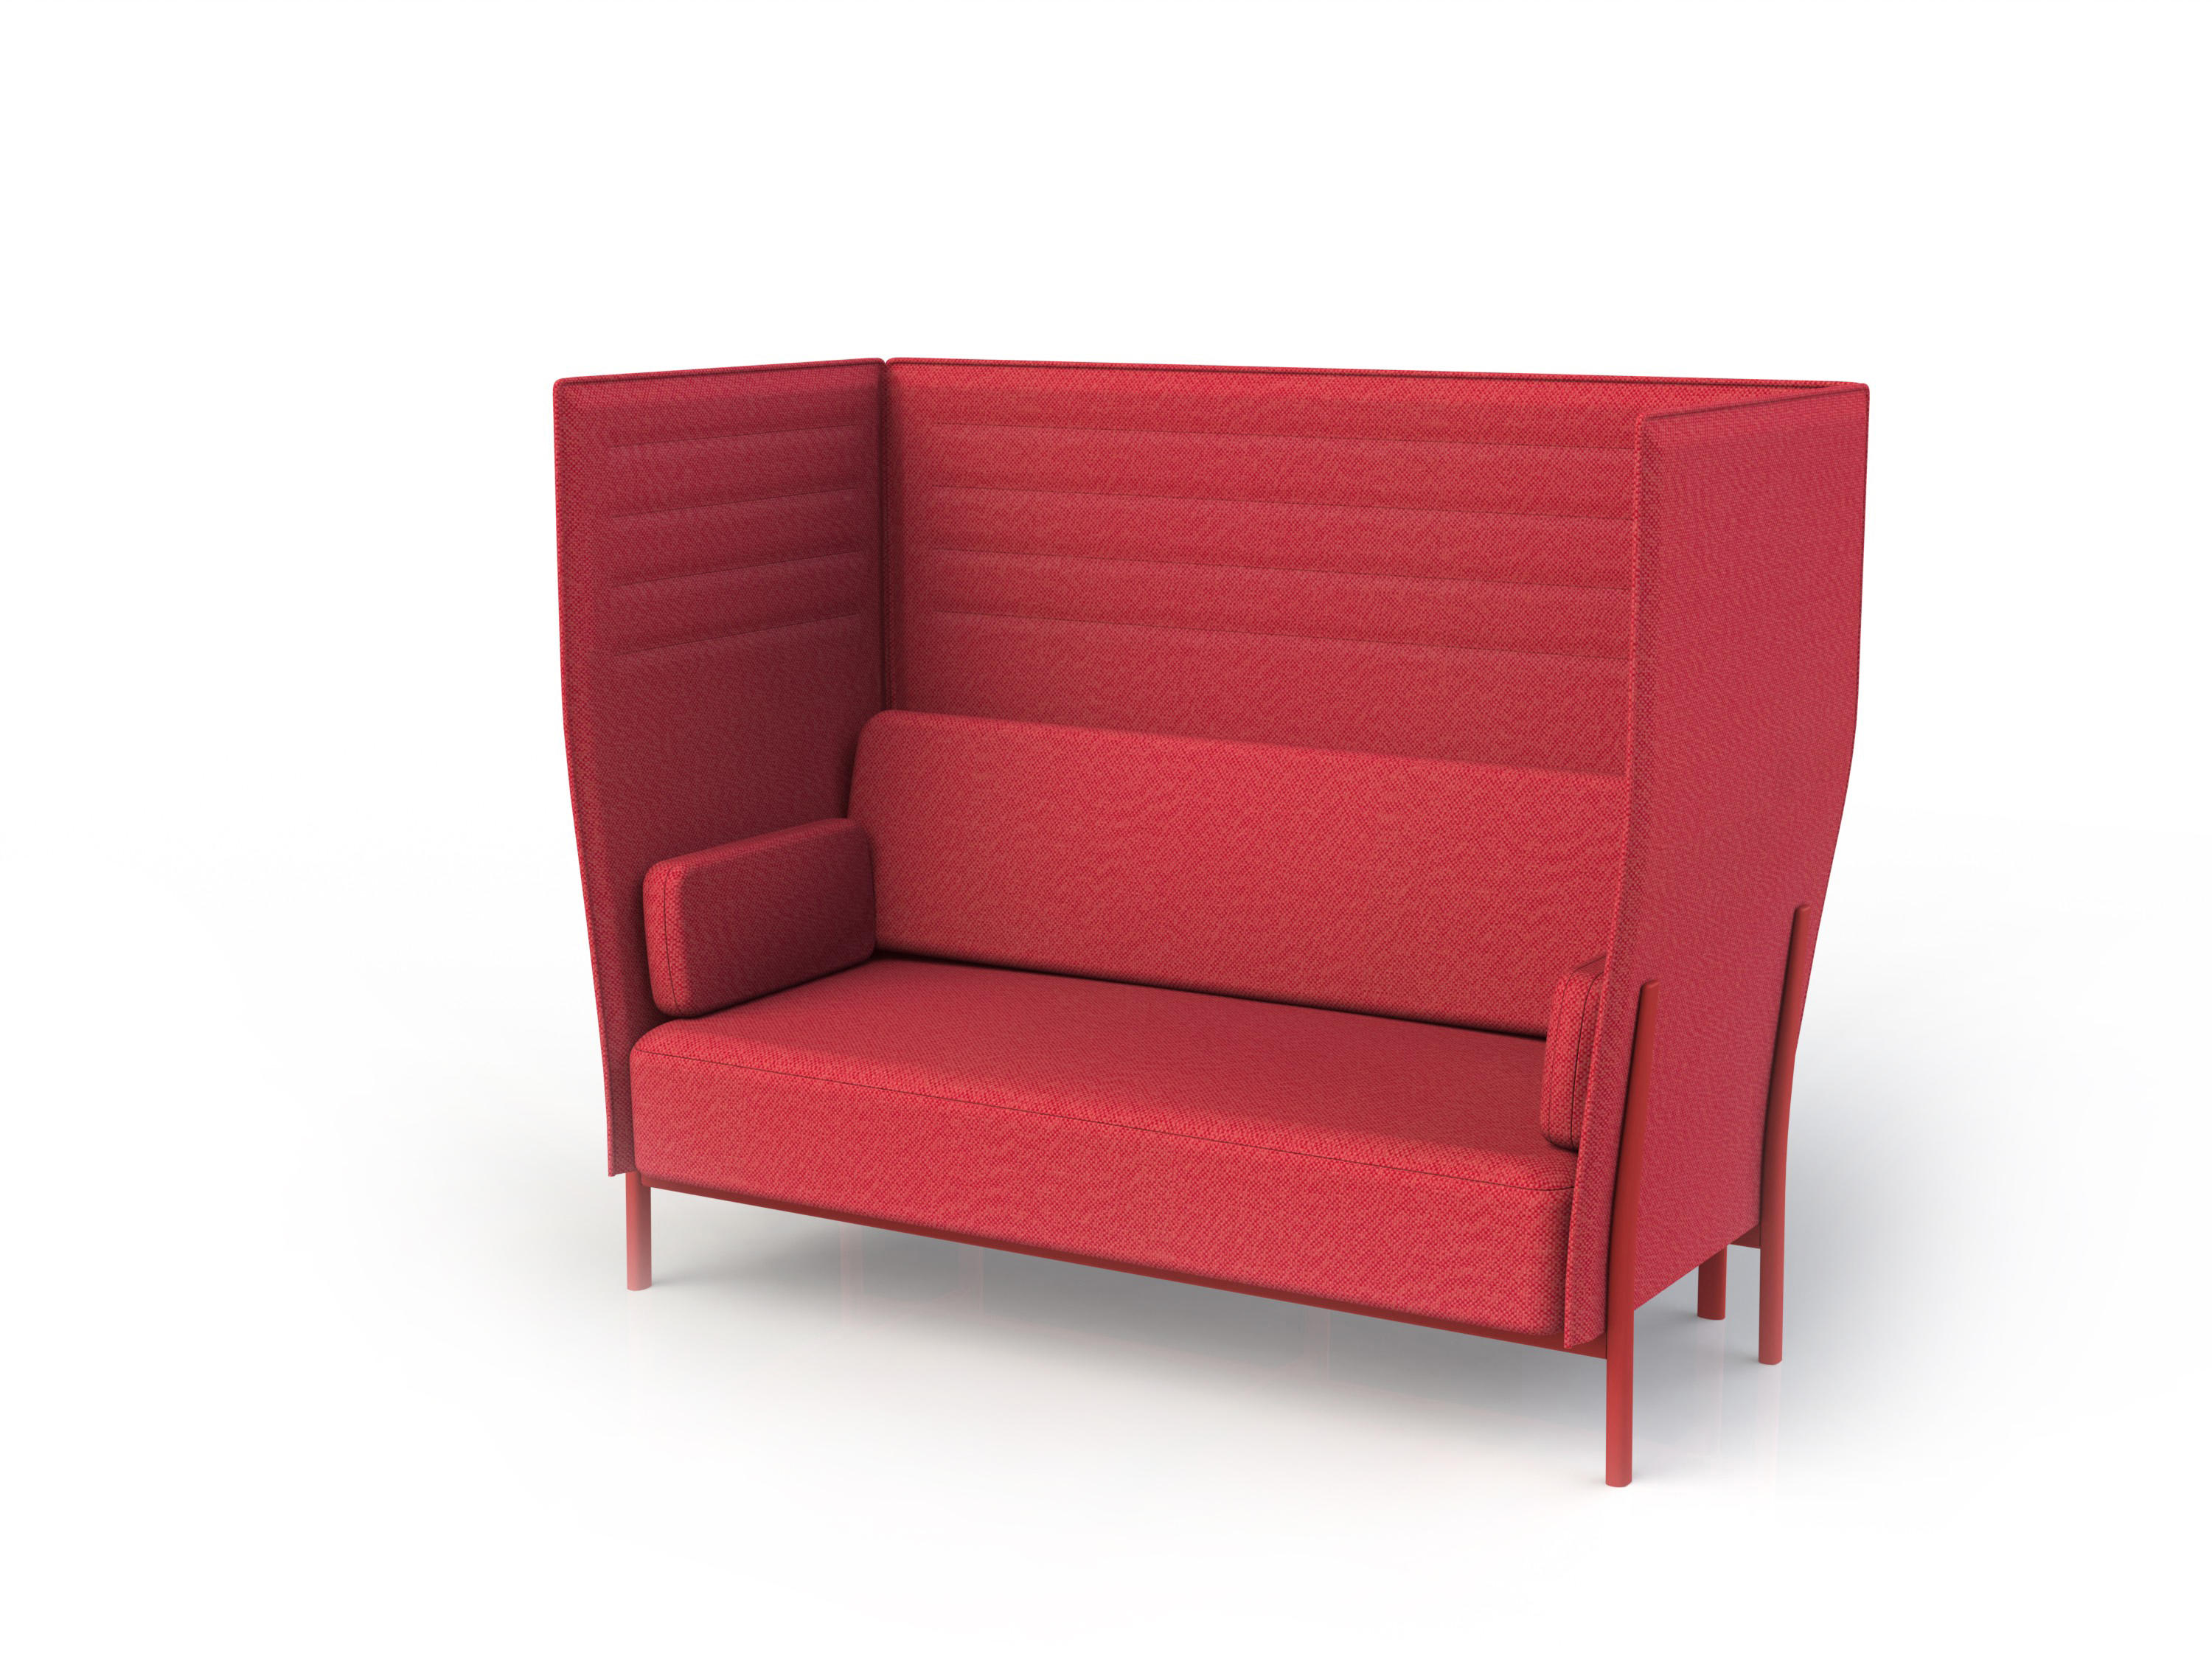 ELEVEN HIGH BACK Lounge sofas from Alias